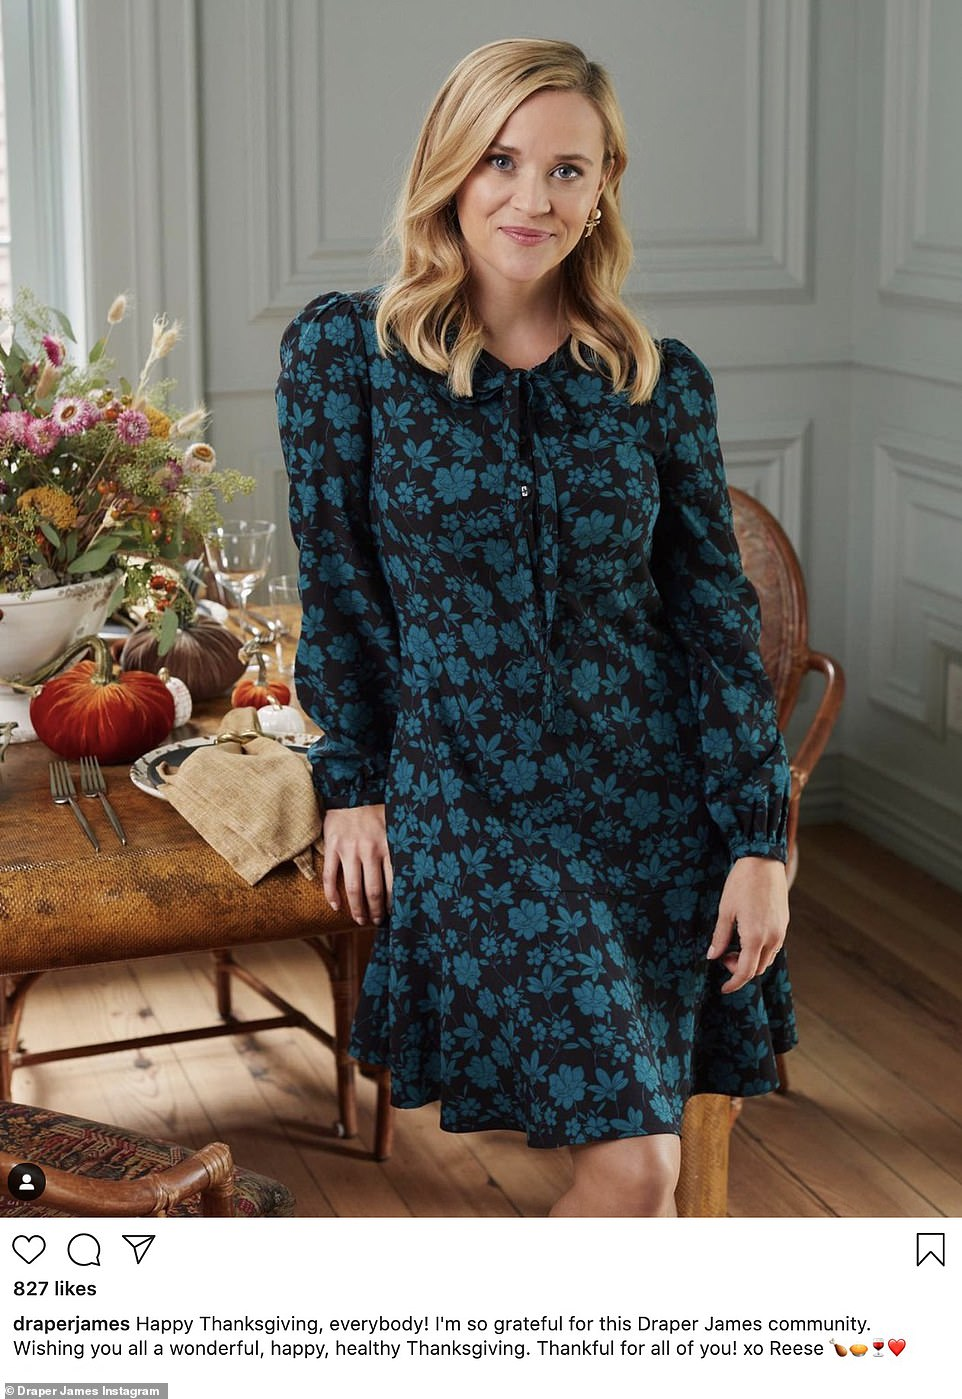 Cheerful: Reese Witherspoon was seen in a green and black dress as she stood in front of her decorated table at home. 'Happy Thanksgiving, everybody!' she said